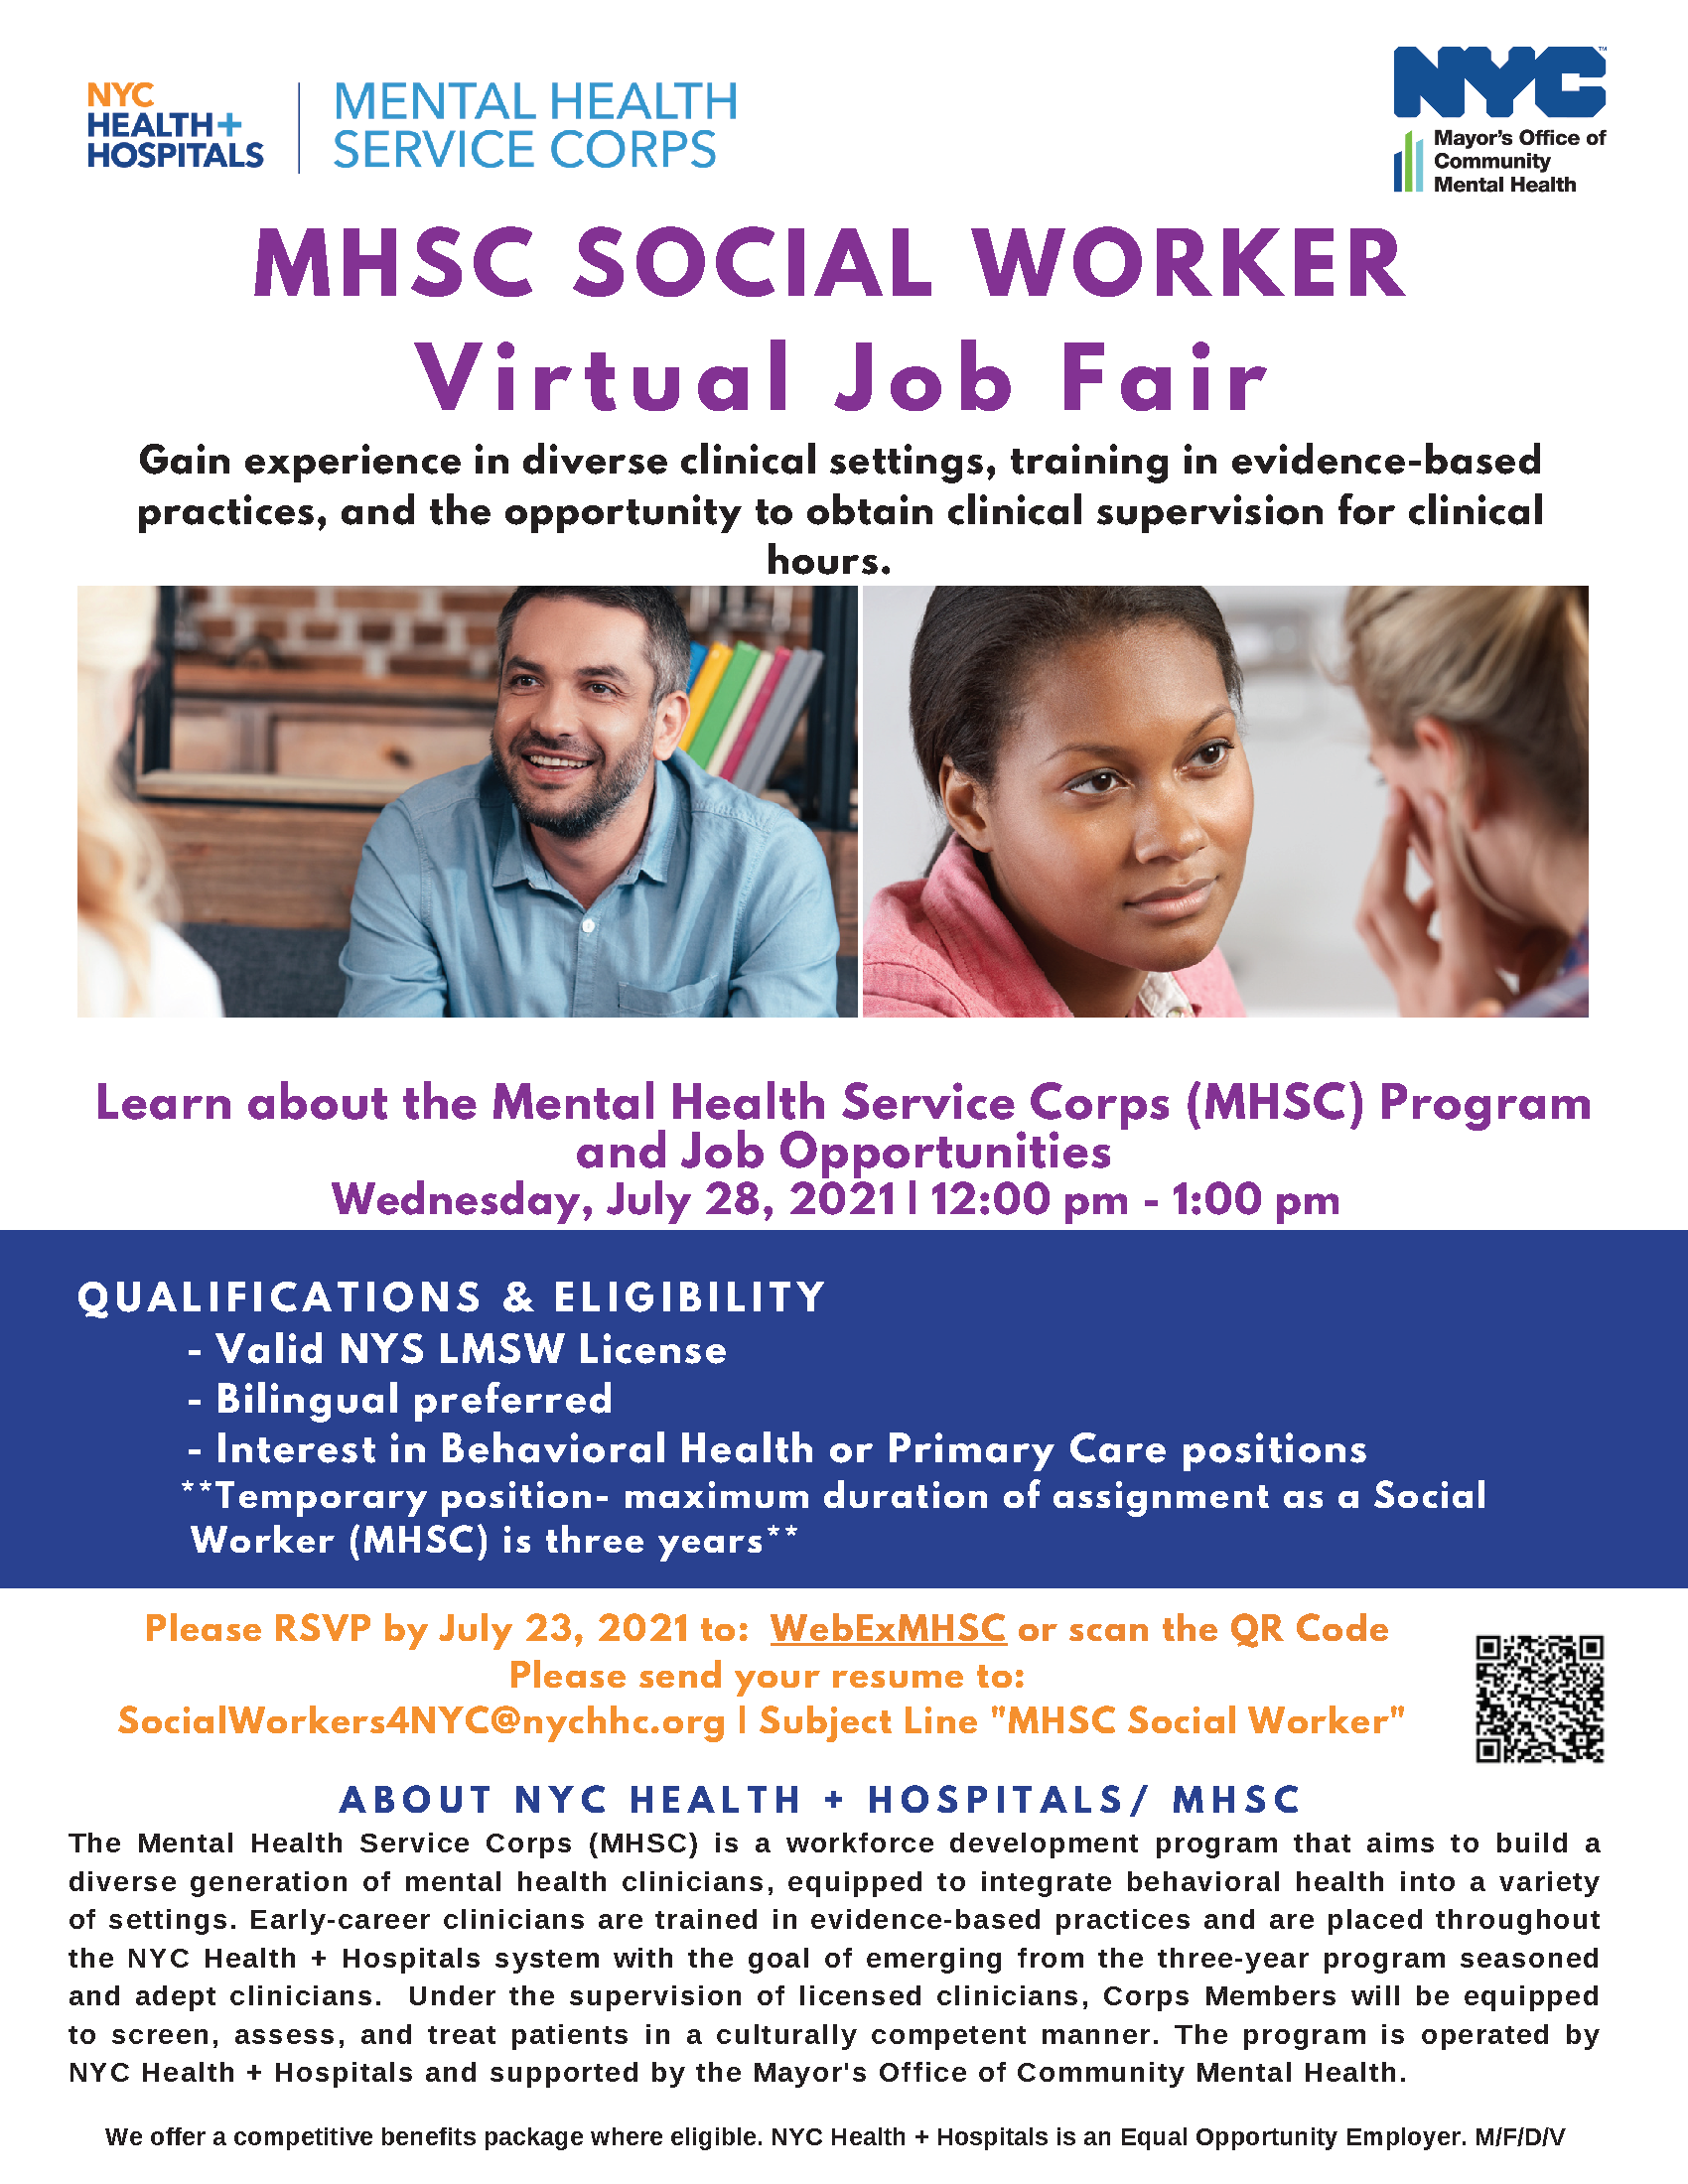 Job Fair flyer titled MHSC Social Worker Virtual Job Fair with description about benefits of program, qualifications and eligibility, and steps for registering for their fair